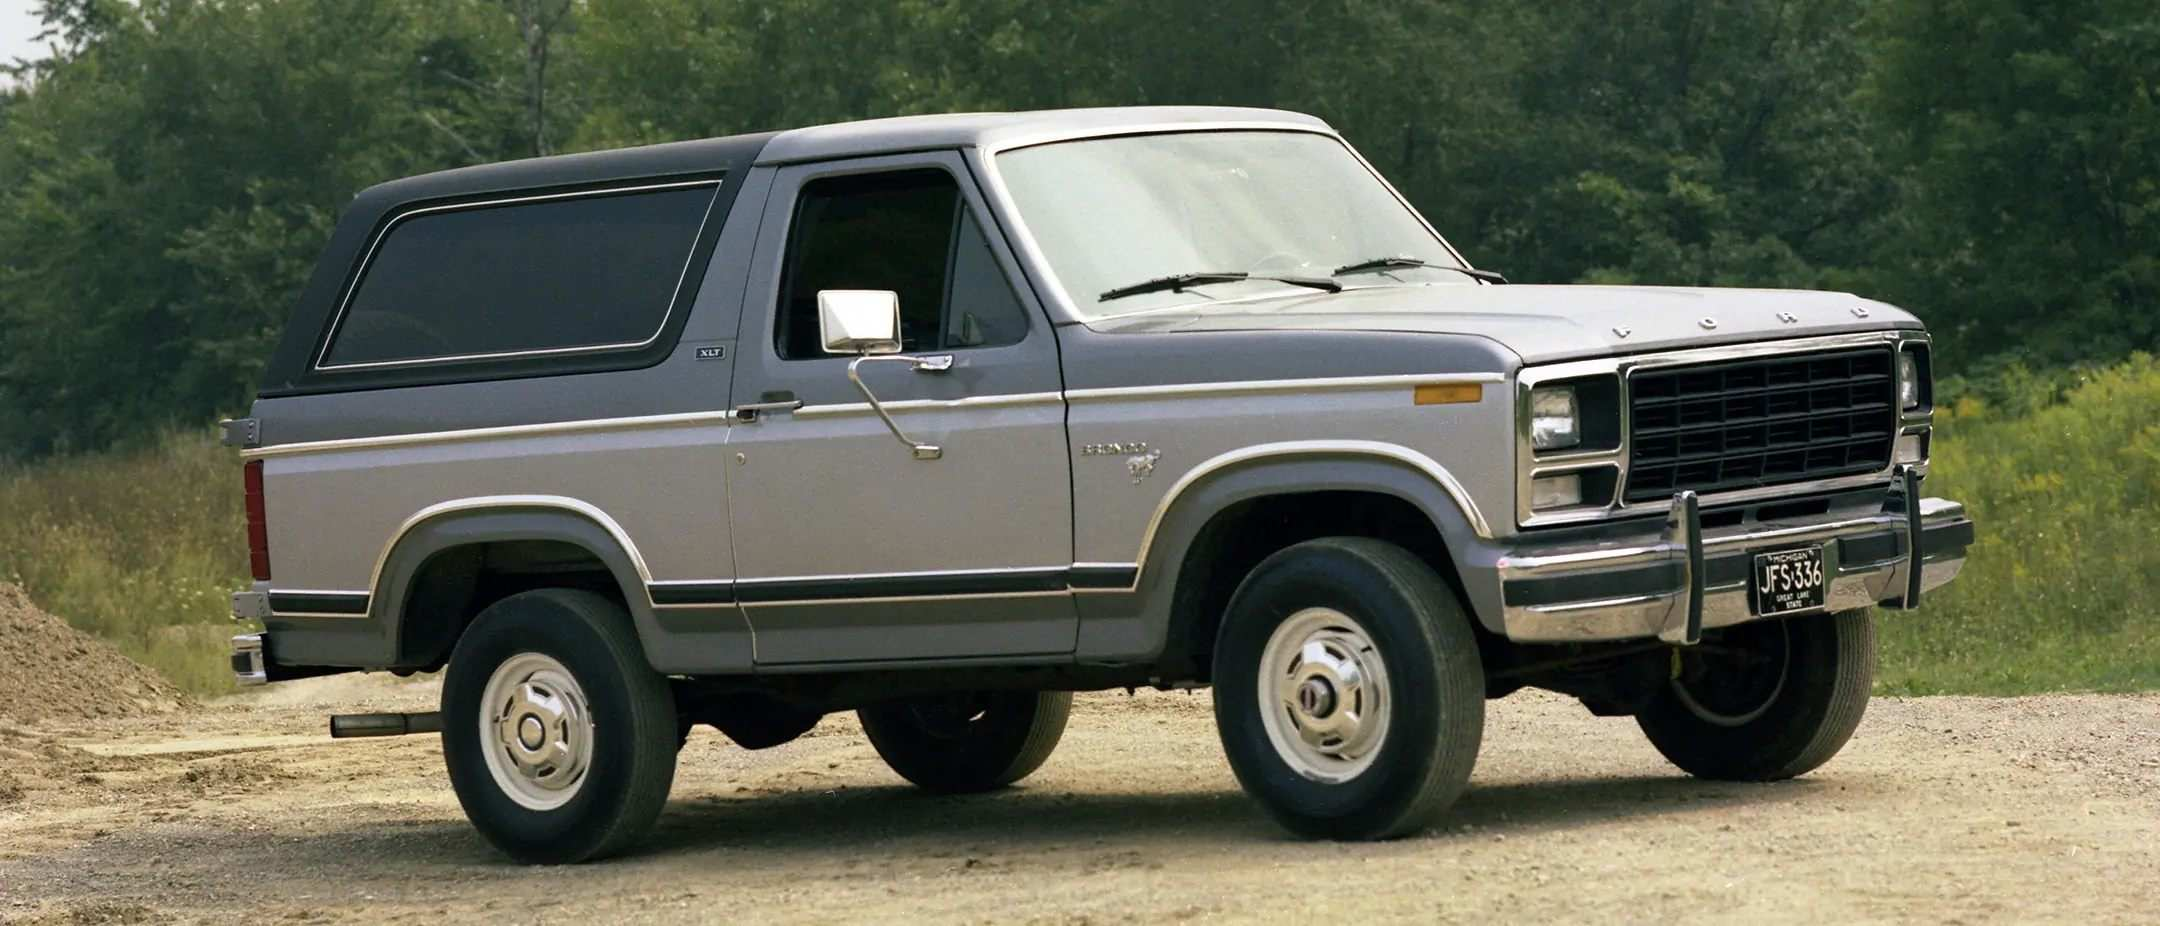 Ford Bronco A Wild History 1980 1986 Cam Clark Ford Canmore